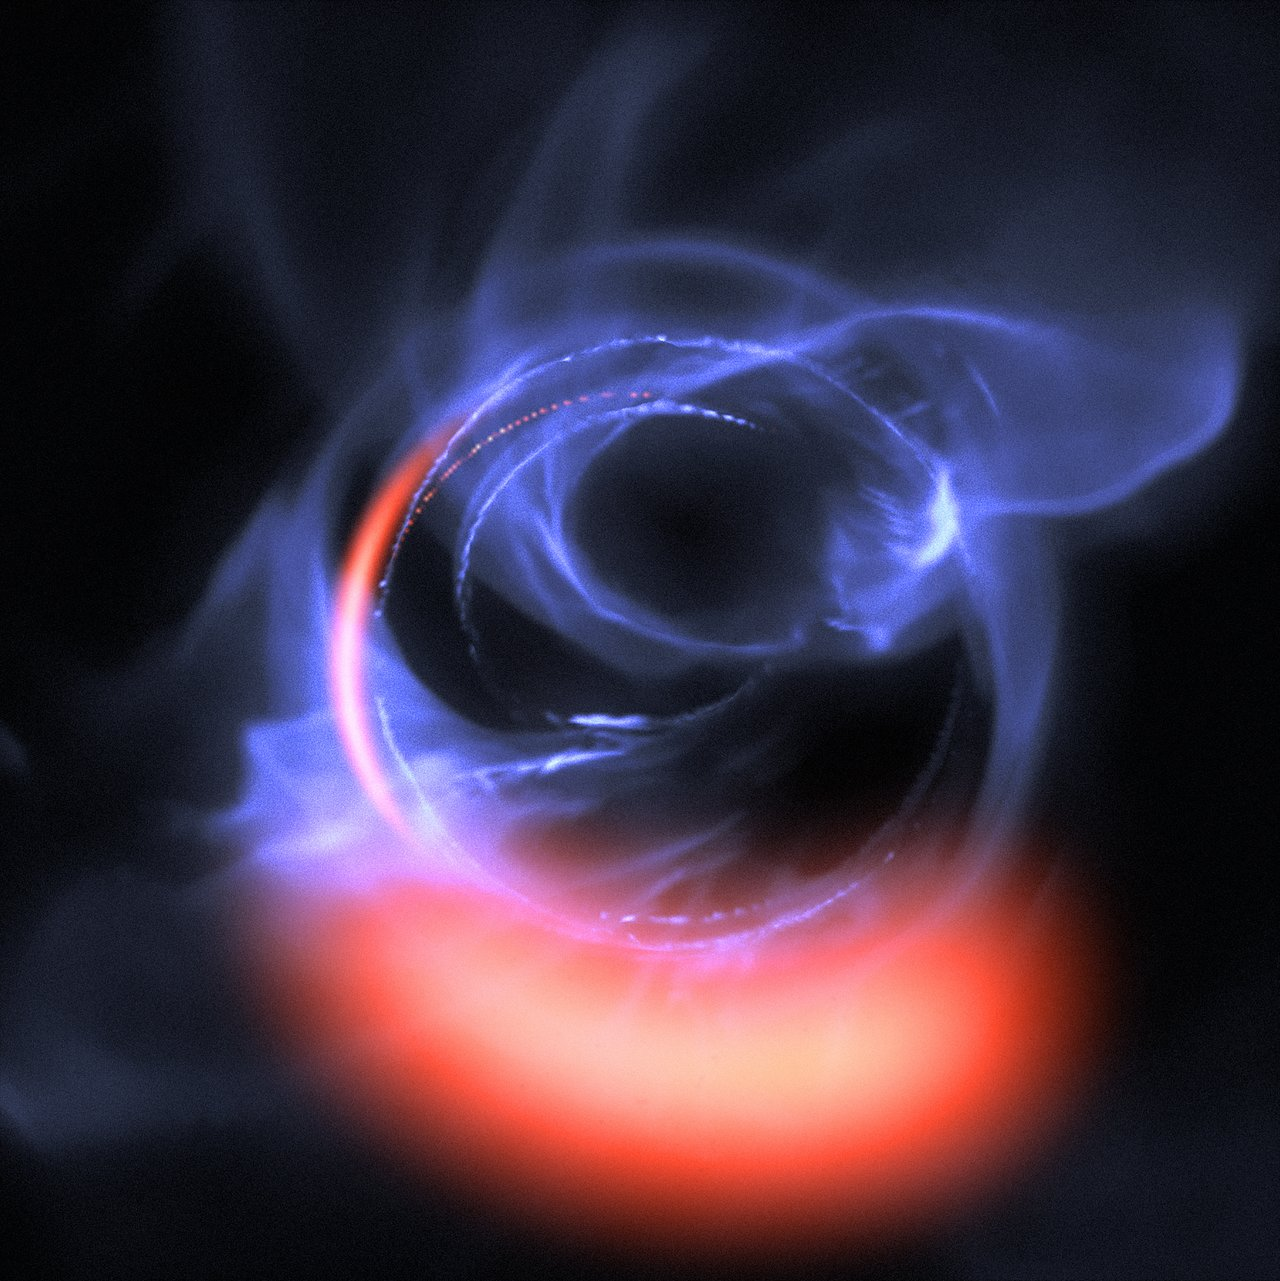 Scientists Have Spotted A Tiny Black Hole That May Be Just 12